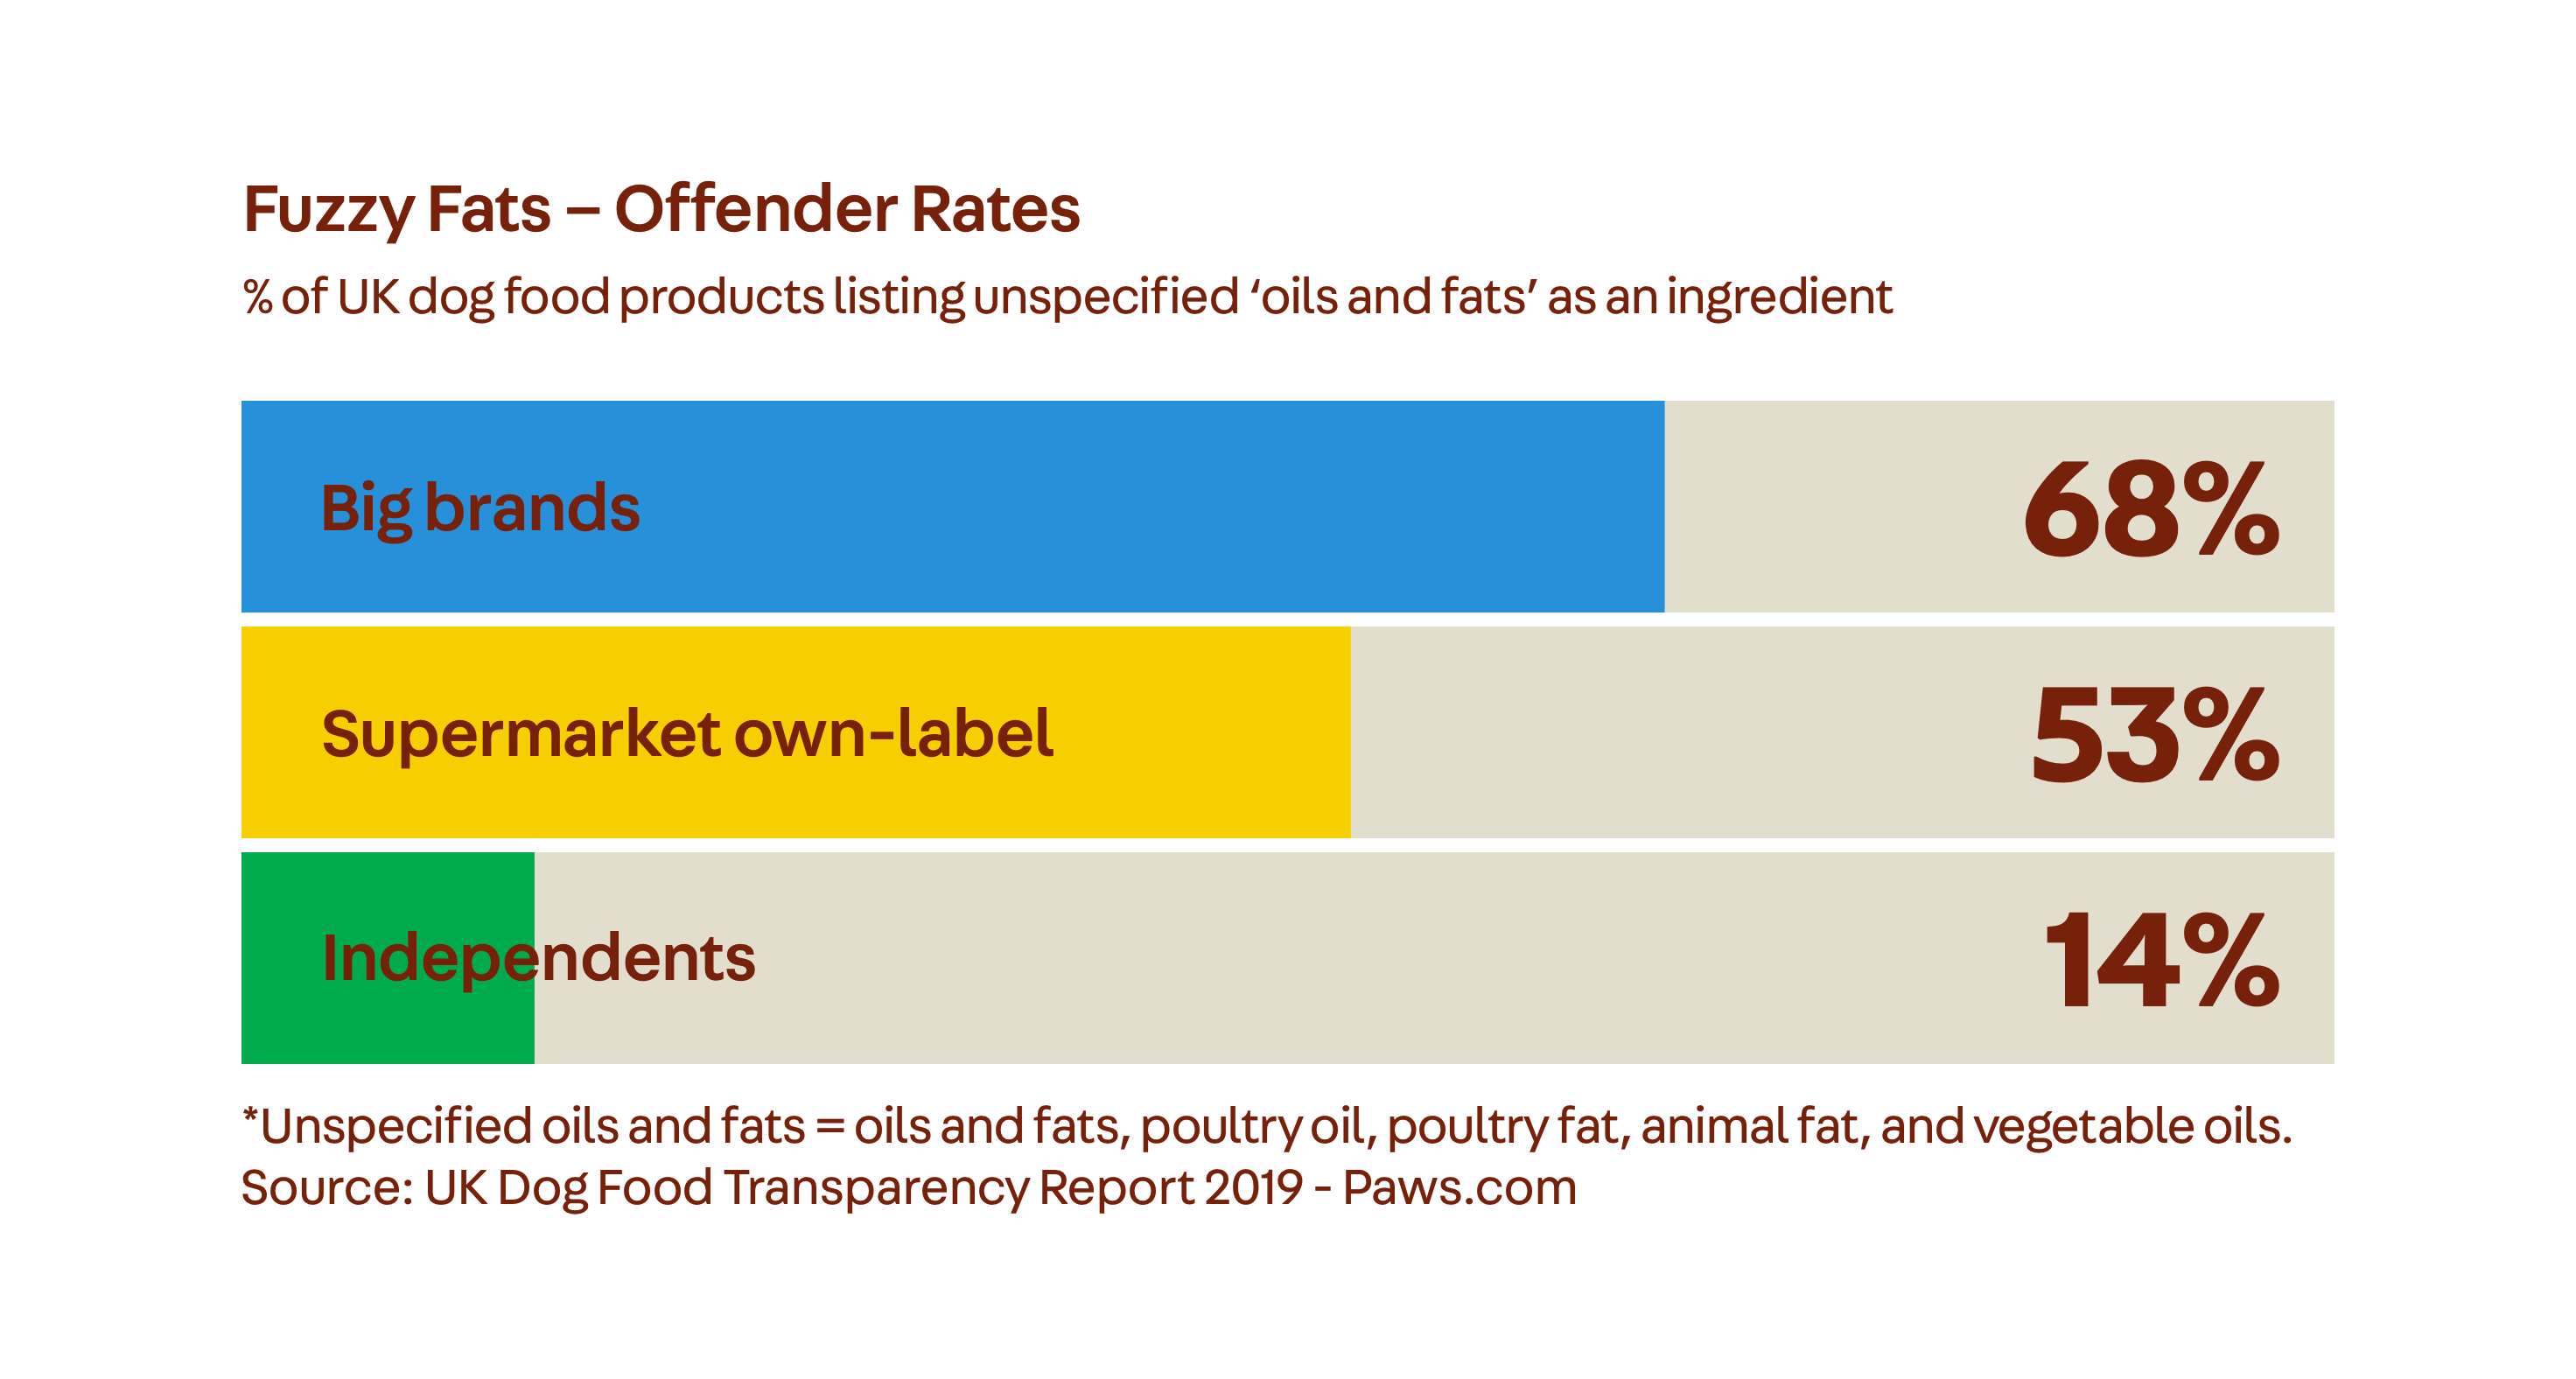 Dirty Paws Chords Dog Food Transparency Report Paws